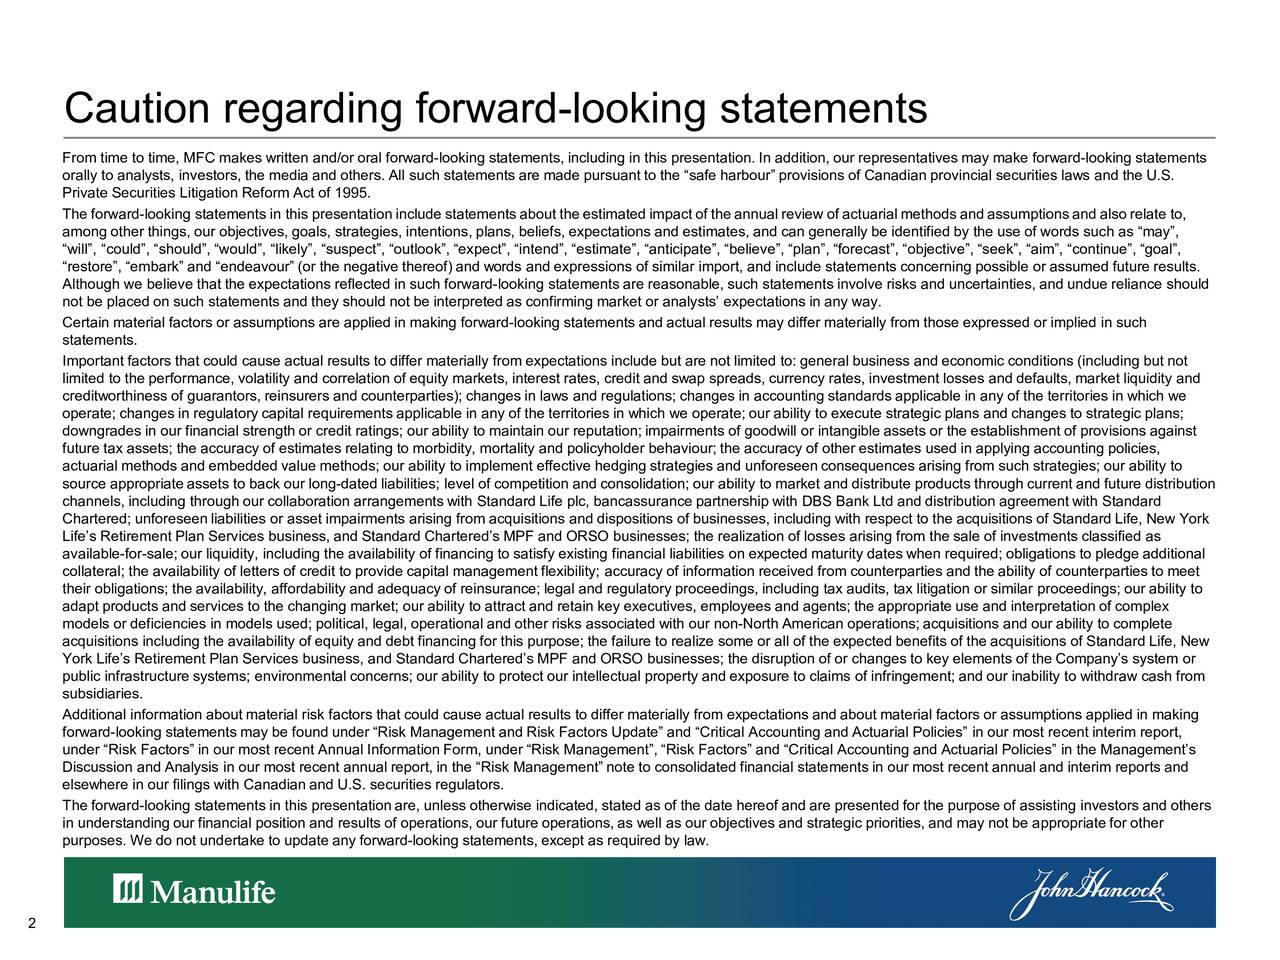 From time to time, MFC makes written and/or oral forward-looking statements, including in this presentation. In addition, our representatives may make forward-looking statements orally to analysts, investors, the media and others. All such statements are made pursuant to the safe harbour provisions of Canadian provincial securities laws and the U.S. Private Securities Litigation Reform Act of 1995. The forward-looking s tatements in this presentationincludestatementsabouttheestimatedimpactoftheannualreviewofac tuarialmethodsandassumptionsandalso relate to, among other things, our objectives, goals, strategies, intentions, plans, beliefs, expectations and estimates, and can generally be identified by the use of words such as may, will, could, should, would, likely, suspect, outlook, expect, intend, estimate, anticipate, believe, plan, forecast, objective, seek, aim, continue, goal, restore, embark and endeavour (or the negative thereof) and words and expressions of similar import, and include statements concerning possible or assumed future results. Although we believe that the expectations reflected in such forward-looking statements are reasonable, such statements involve risks and uncertainties, and undue reliance should not be placed on such statements and they should not be interpreted as confirming market or analysts expectations in any way. Certain material factors or assumptions are applied in making forward-looking statements and actual results may differ materially from those expressed or implied in such statements. Important factors that could cause actual results to differ materially from expectations include but are not limited to: general business and economic conditions (including but not limited to the performance, volatility and correlation of equity markets, interest rates, credit and swap spreads, currency rates, investment losses and defaults, market liquidity and creditworthiness of guarantors, reinsurers and counterparties); changes in laws and 